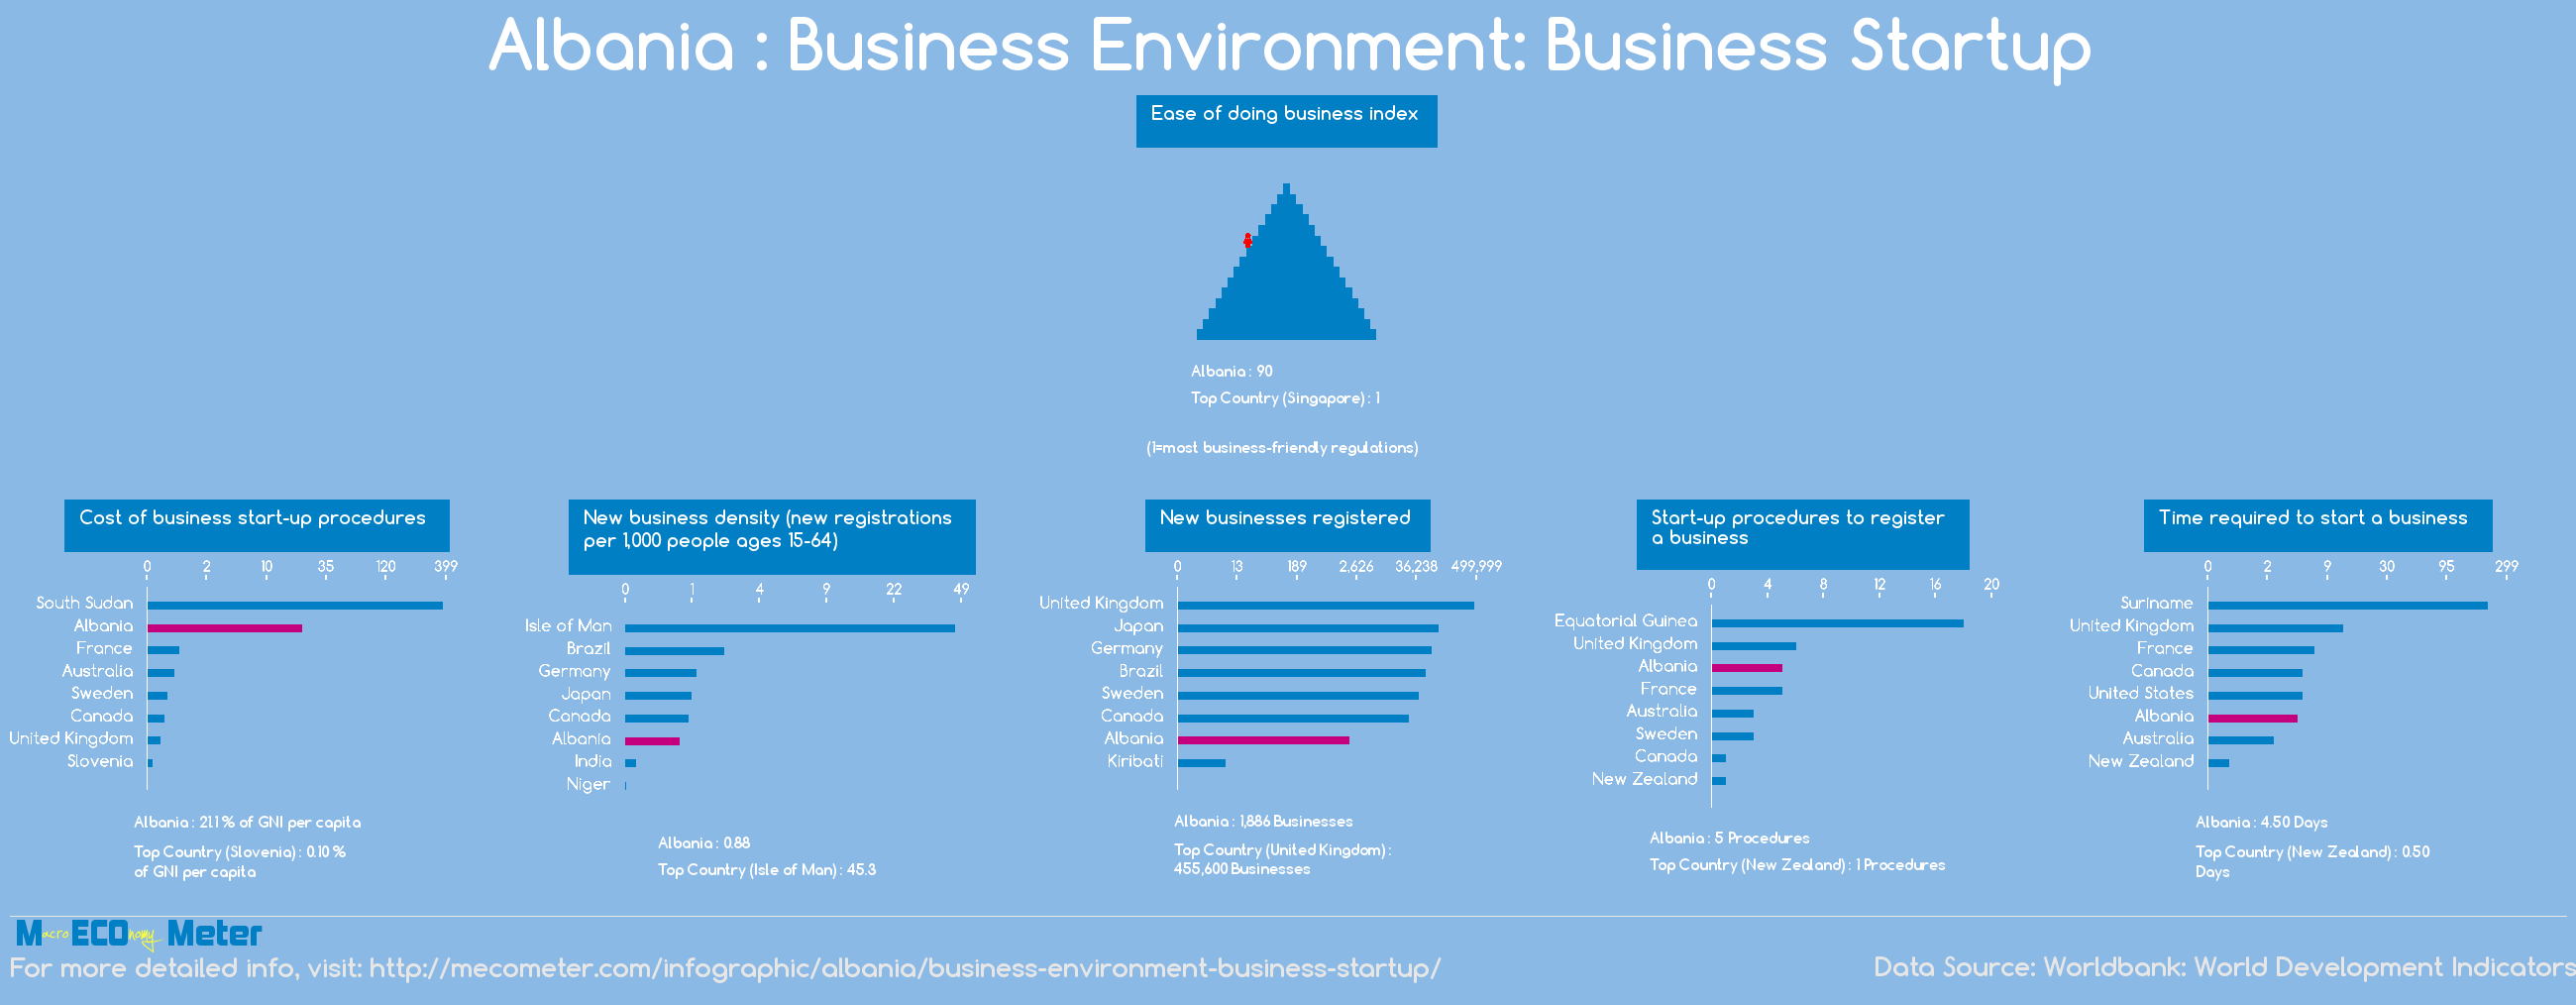 Albania : Business Environment: Business Startup